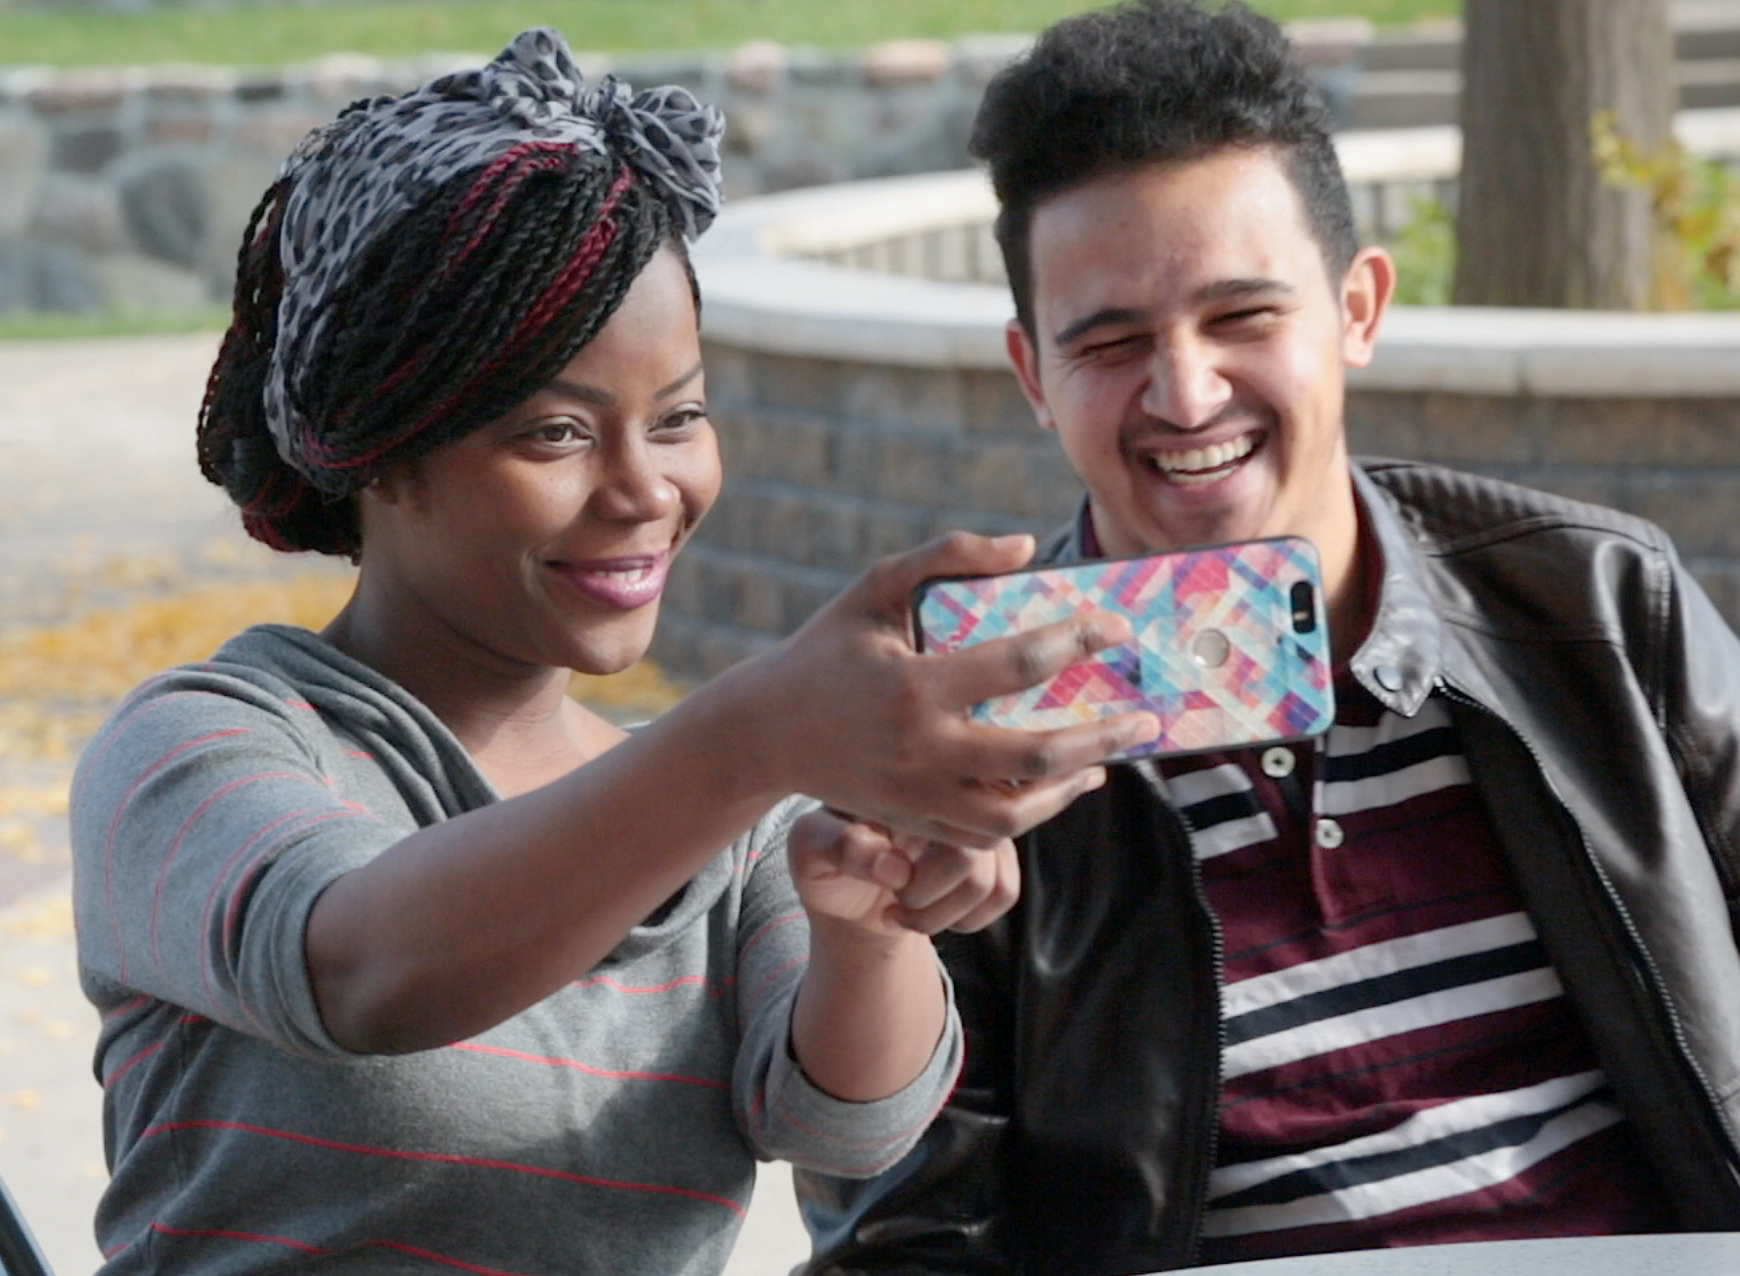 Two smiling students taking a photo of themselves with a cell phone